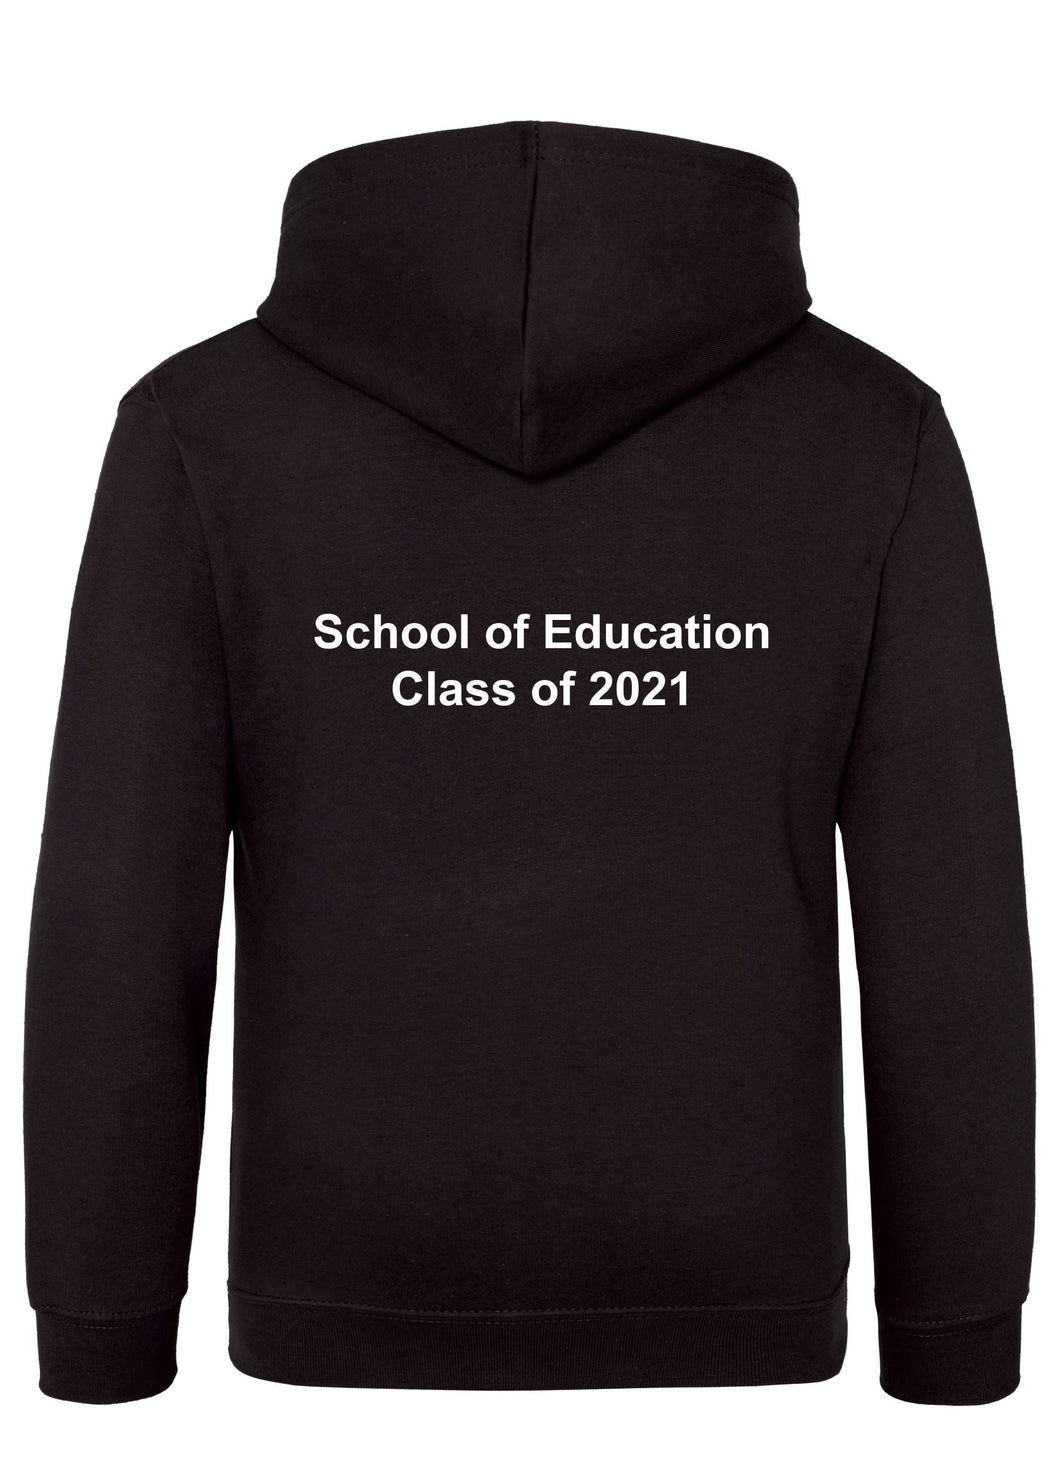 School of Education Class of 2021